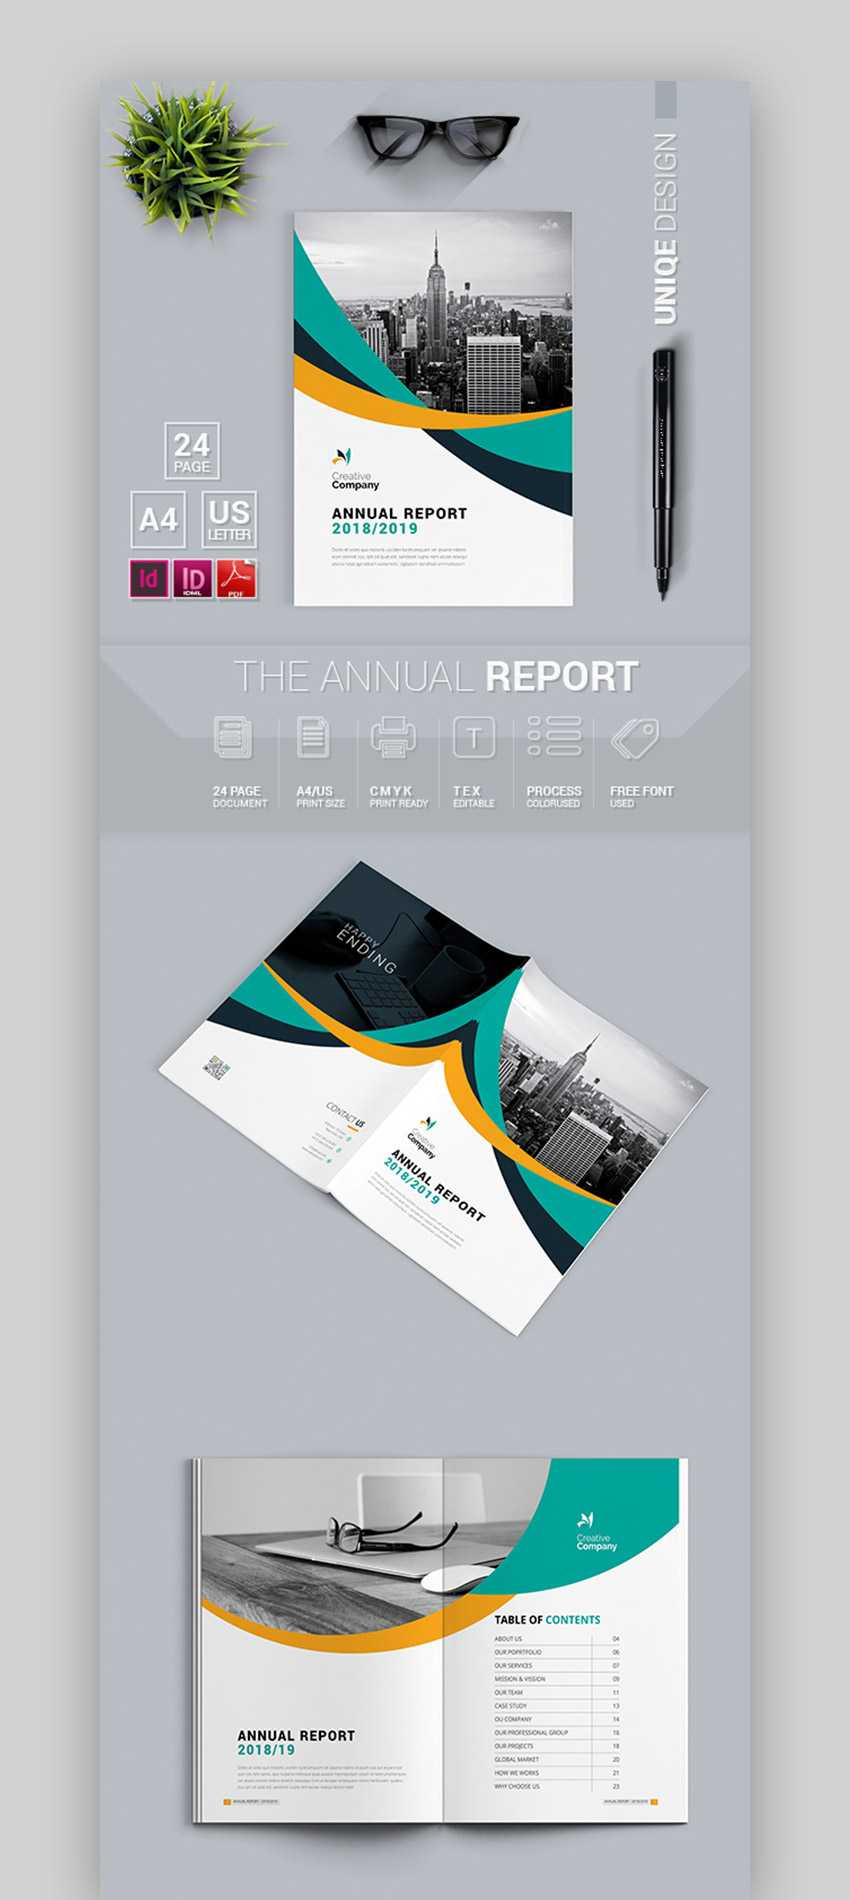 587C Annual Report Template 5 Free Word Pdf Documents In Annual Report Template Word